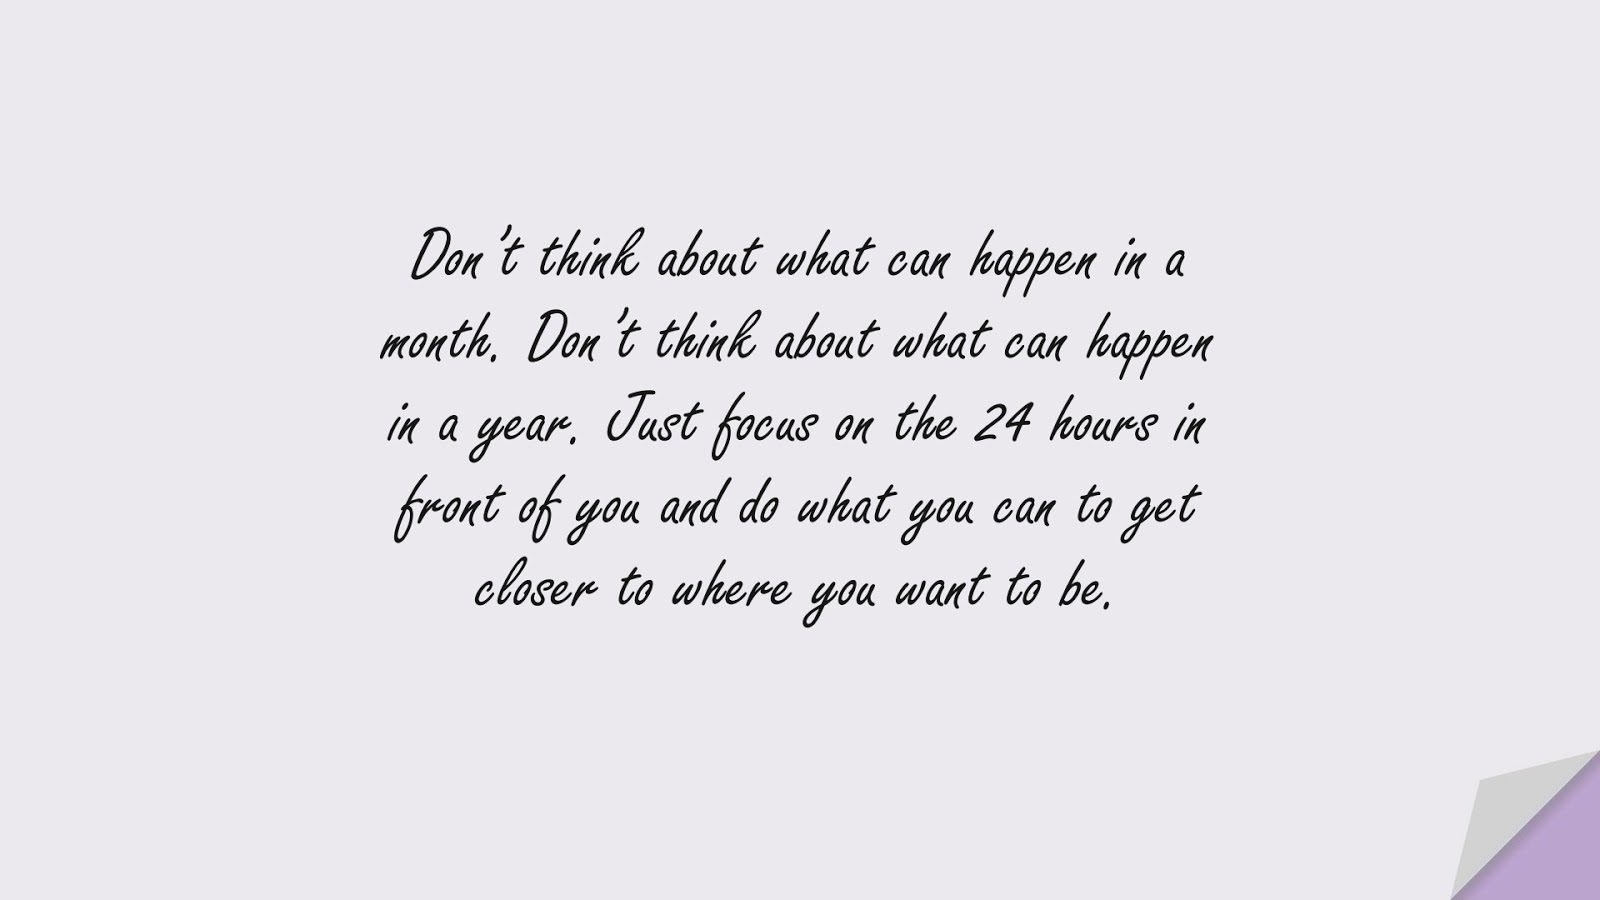 Don't think about what can happen in a month. Don't think about what can happen in a year. Just focus on the 24 hours in front of you and do what you can to get closer to where you want to be.FALSE